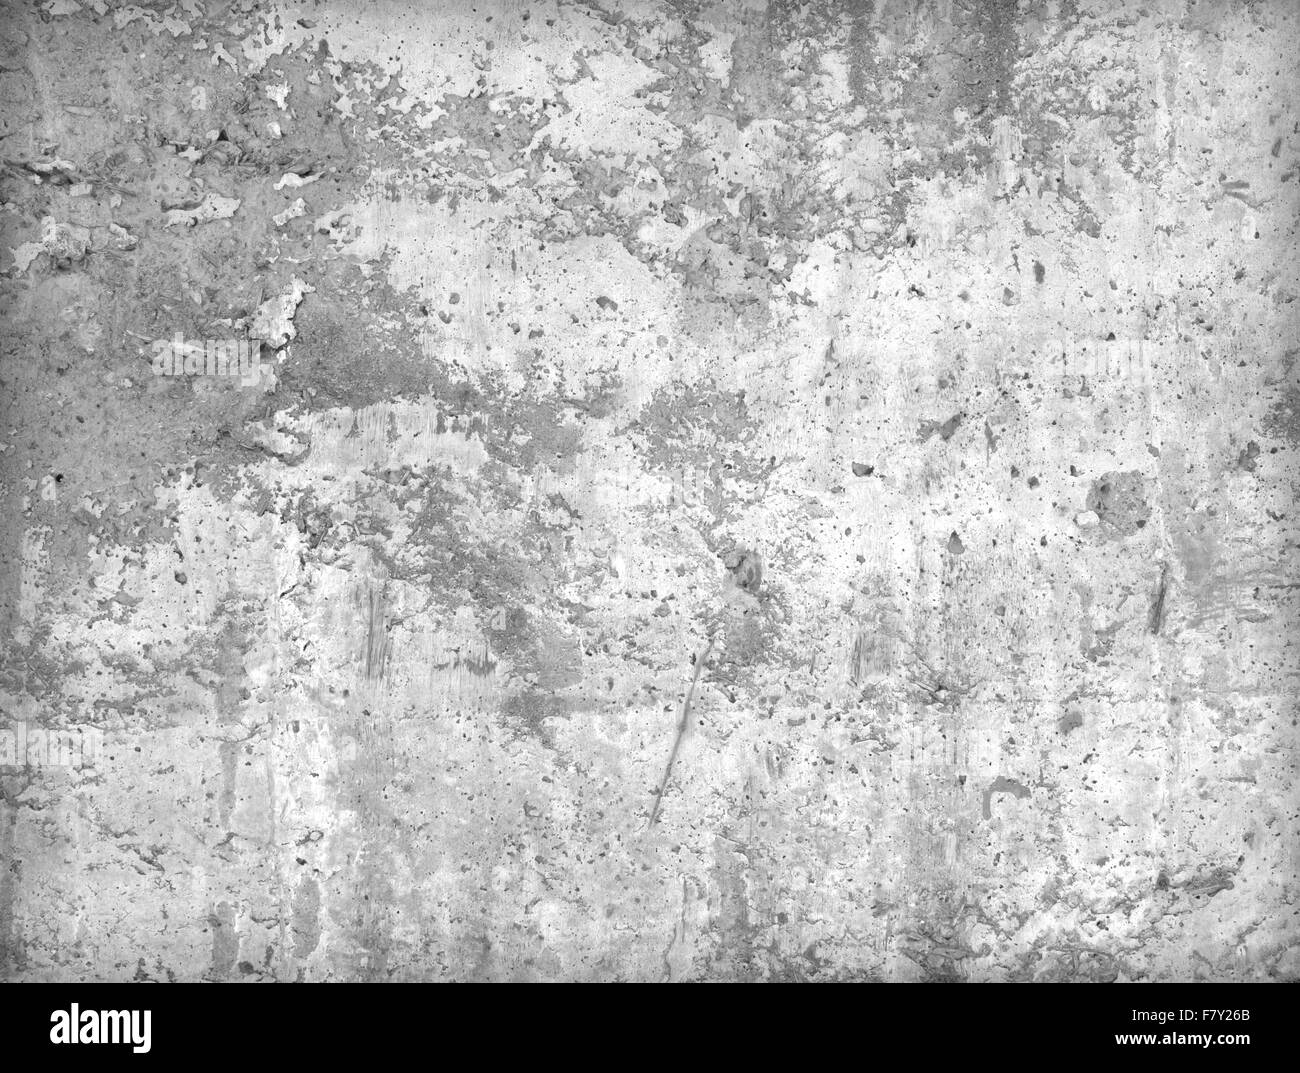 Cement walls weathered durability of the construction industry. - Stock Image